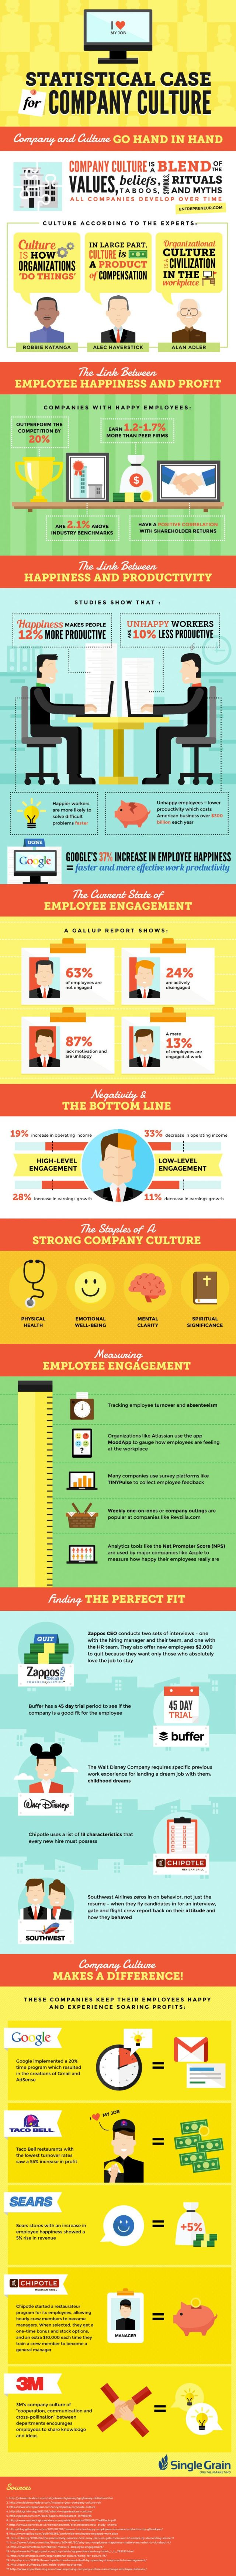 Statistical Case for Company Culture